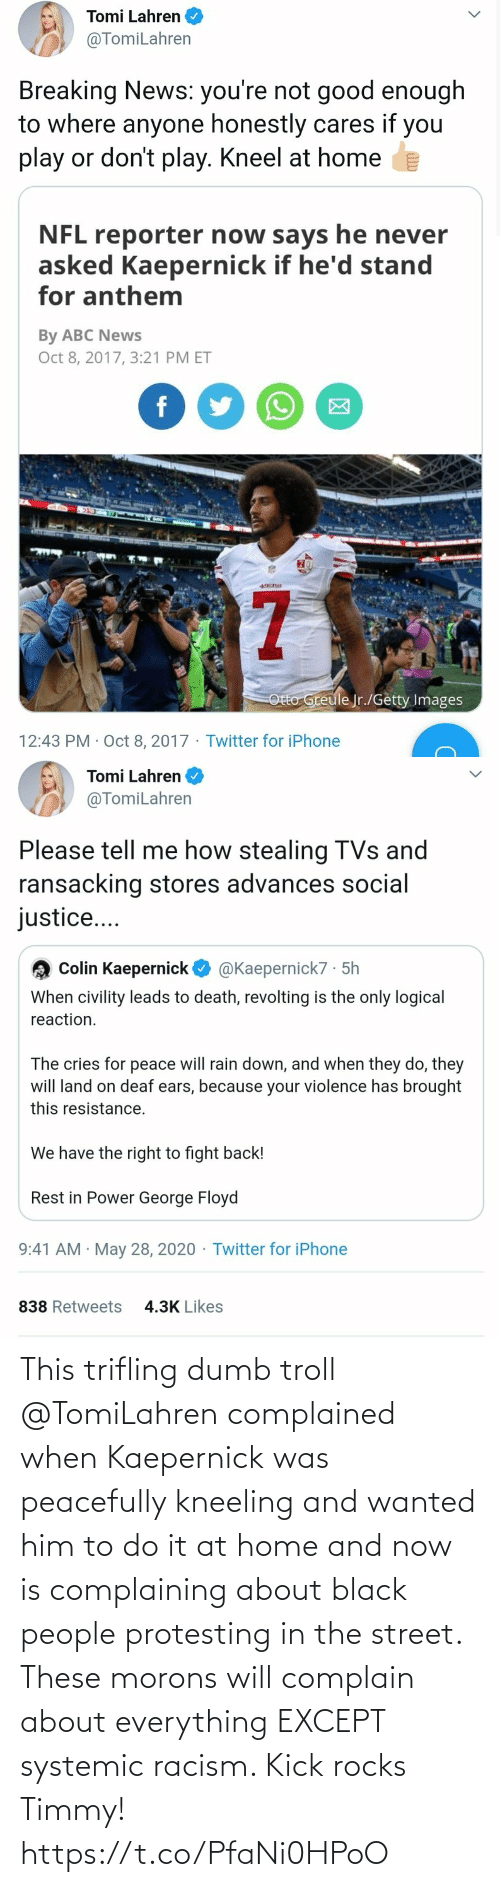 kick: This trifling dumb troll @TomiLahren complained when Kaepernick was peacefully kneeling and wanted him to do it at home and now is complaining about black people protesting in the street. These morons will complain about everything EXCEPT systemic racism. Kick rocks Timmy! https://t.co/PfaNi0HPoO